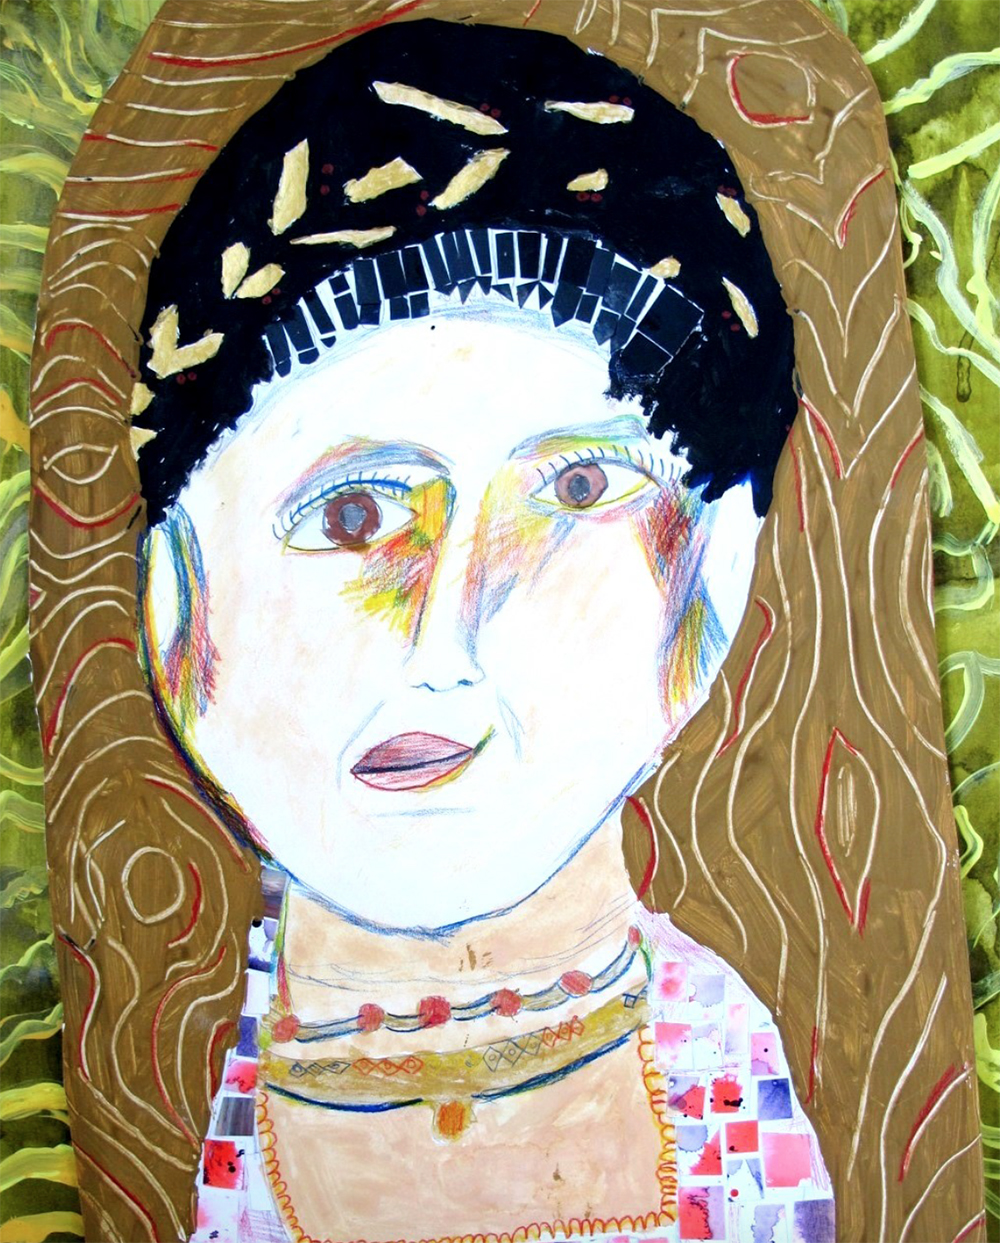 Year 4 Size-A2 Mixed media with paint, collage, oil pastel and coloured pencils. Self-portrait Inspired by Roman portraits on wood.